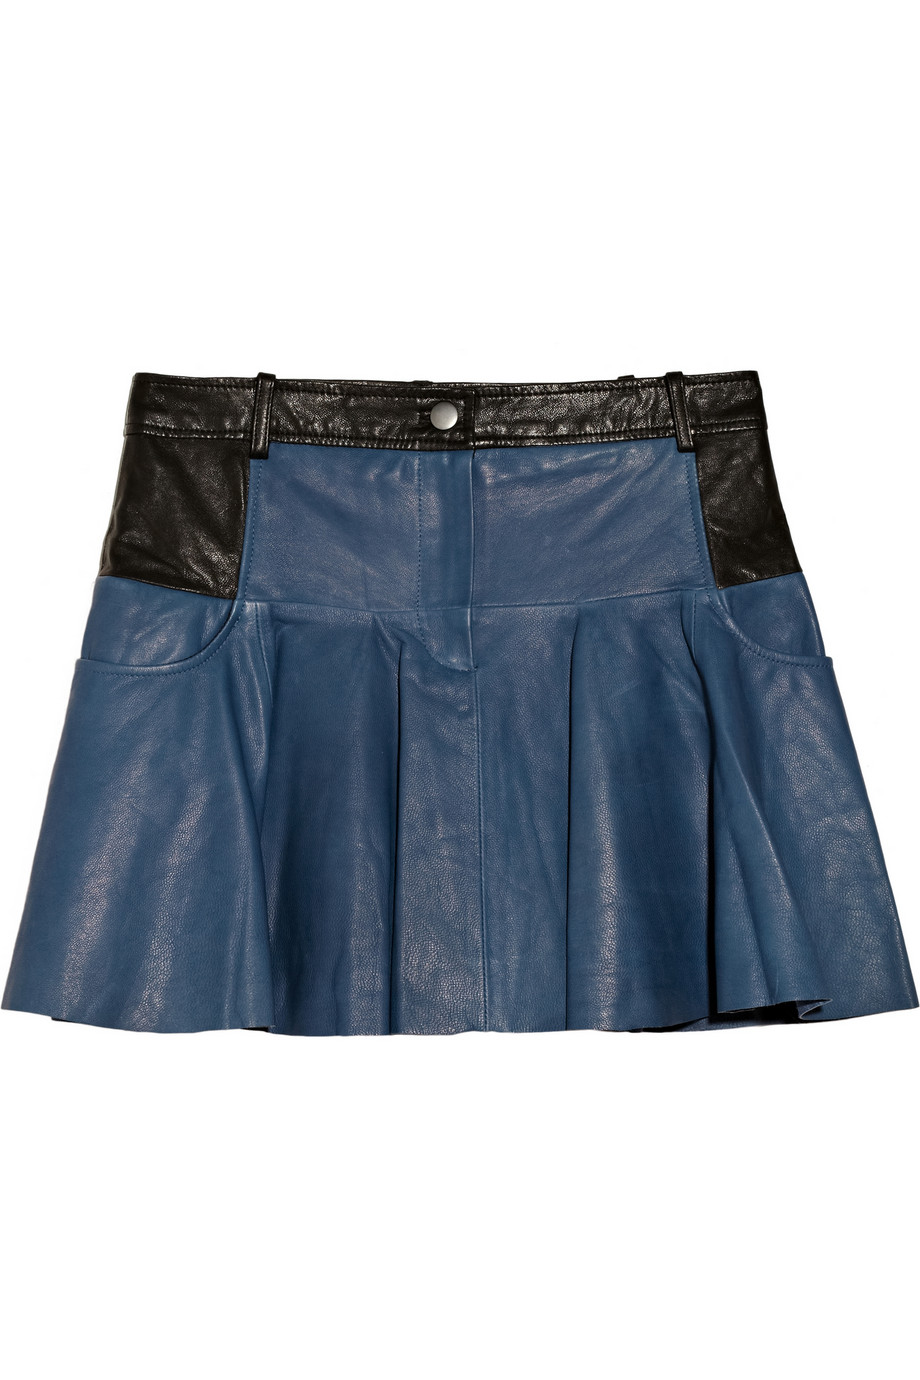 Thakoon addition Leather Mini Skirt in Blue | Lyst